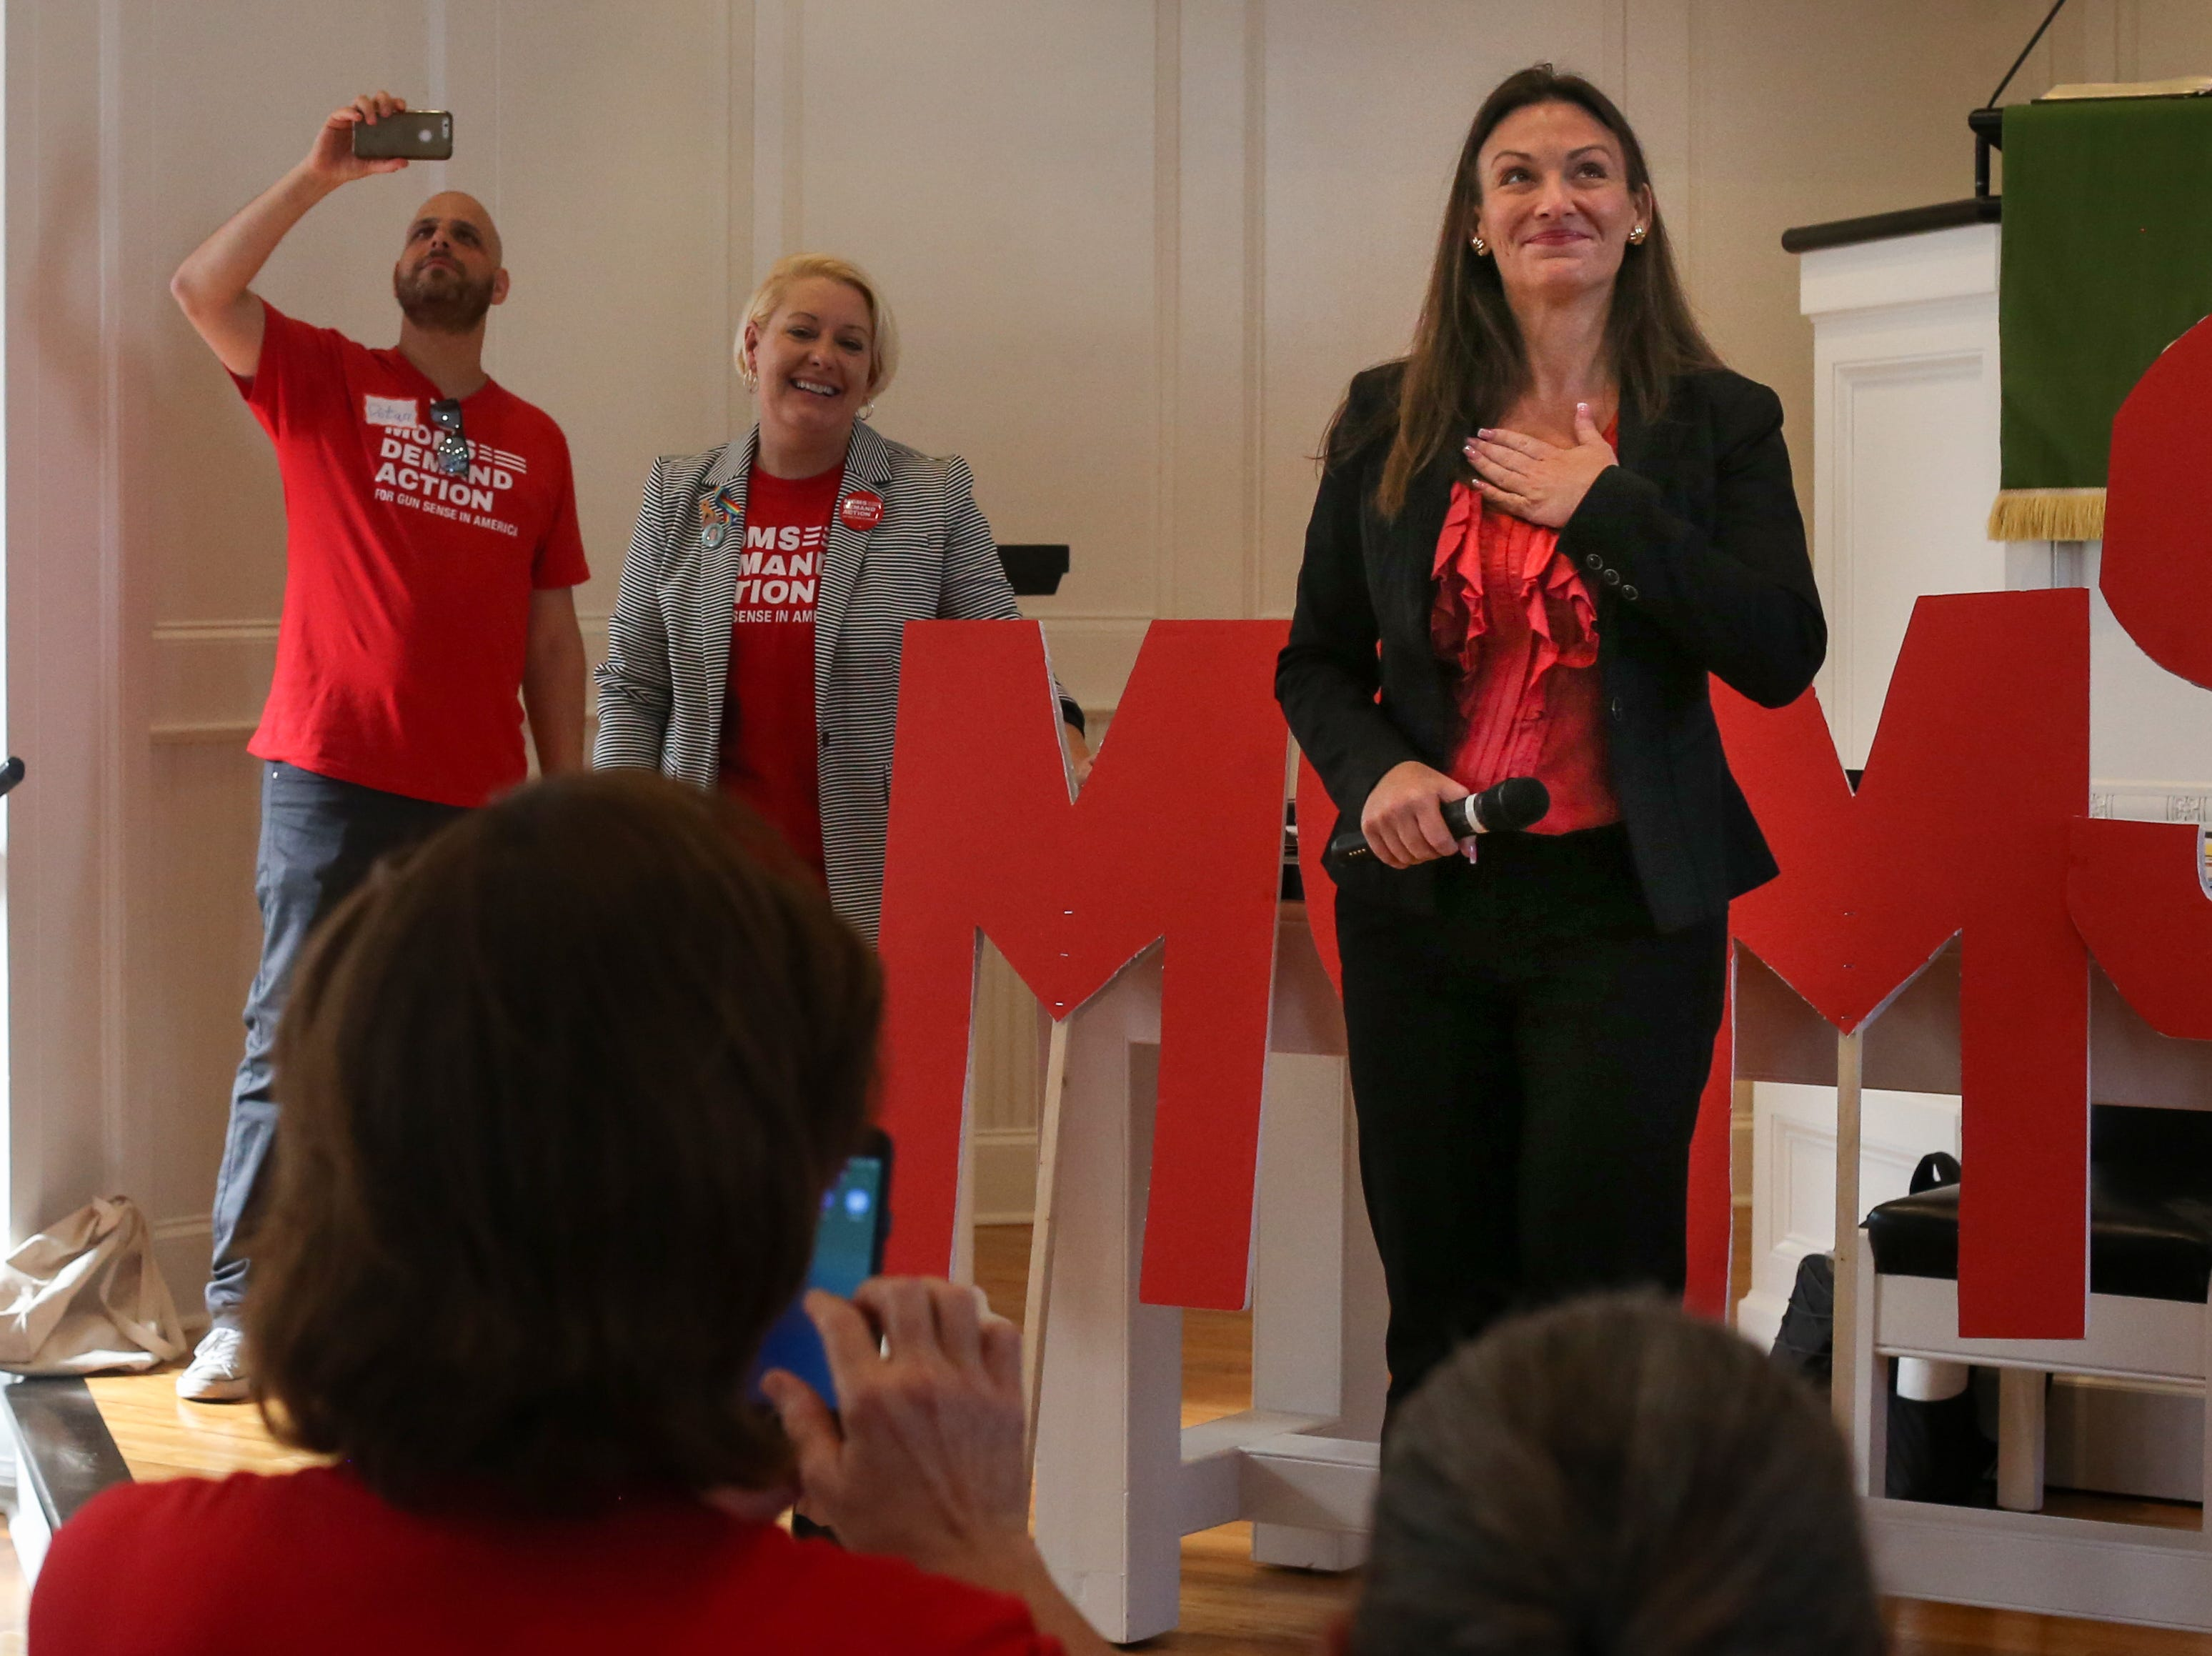 Agriculture Commissioner Nikki Fried is met with a standing ovation and cheers as she takes the stage in front of First Presbyterian Church in Tallahassee to address over 500 members of Moms Demand Action from all over Florida. The activists spent Wednesday, Feb. 6, 2019 in Tallahassee meeting with lawmakers to lobby for stricter gun laws. Fried gave them tips for how to talk to the lawmakers and their aides.